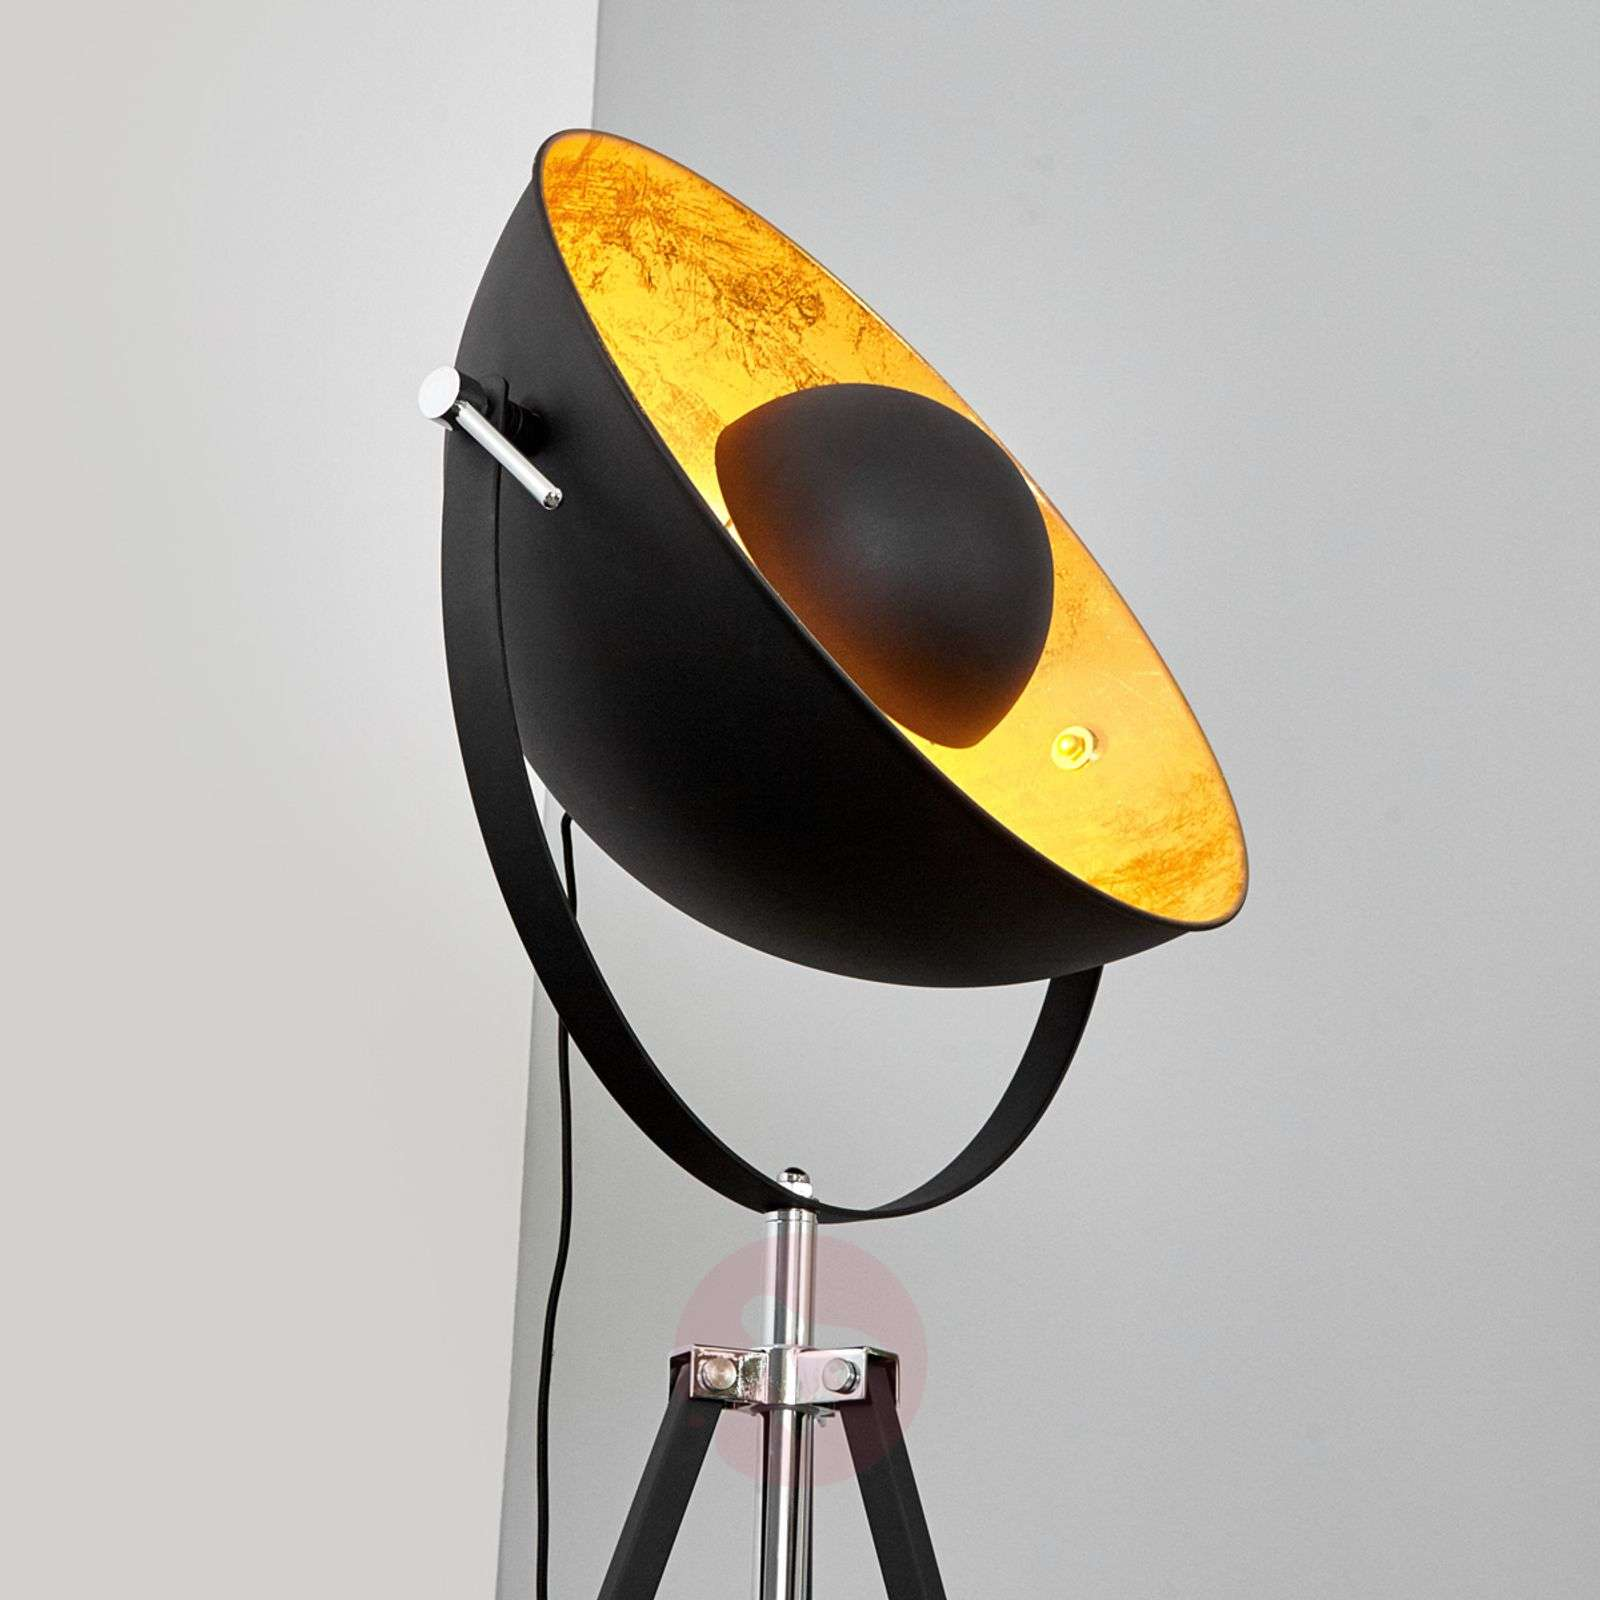 Extravagant floor lamp Mineva in black and gold-4018081-02